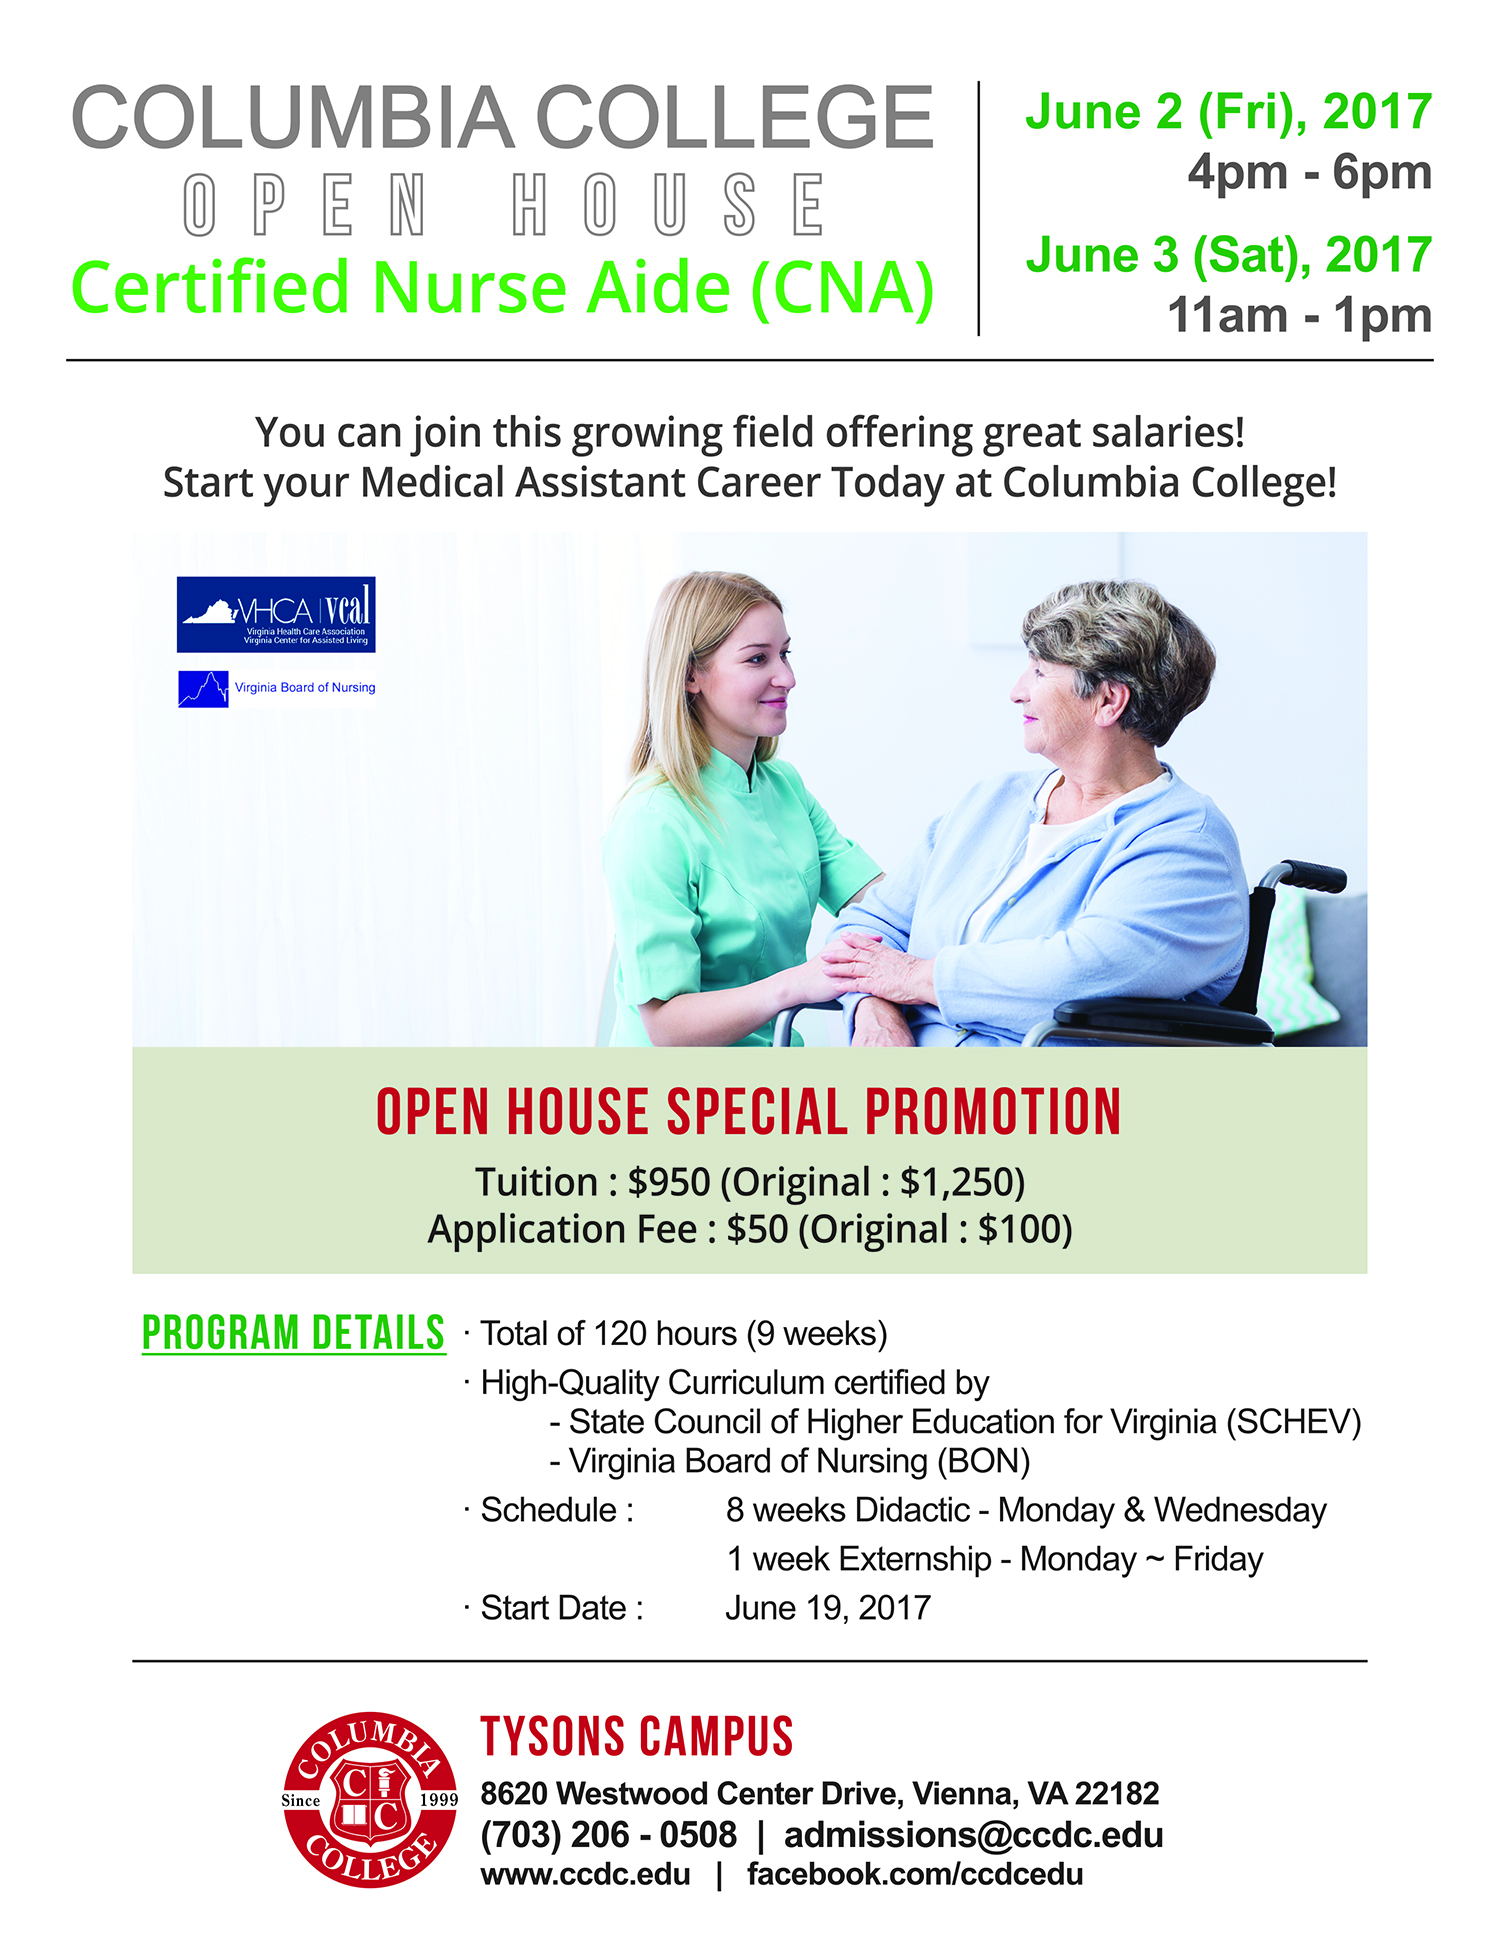 Elegant photos of cna online certification business cards and certified nurse aide cna open house columbia college xflitez Choice Image